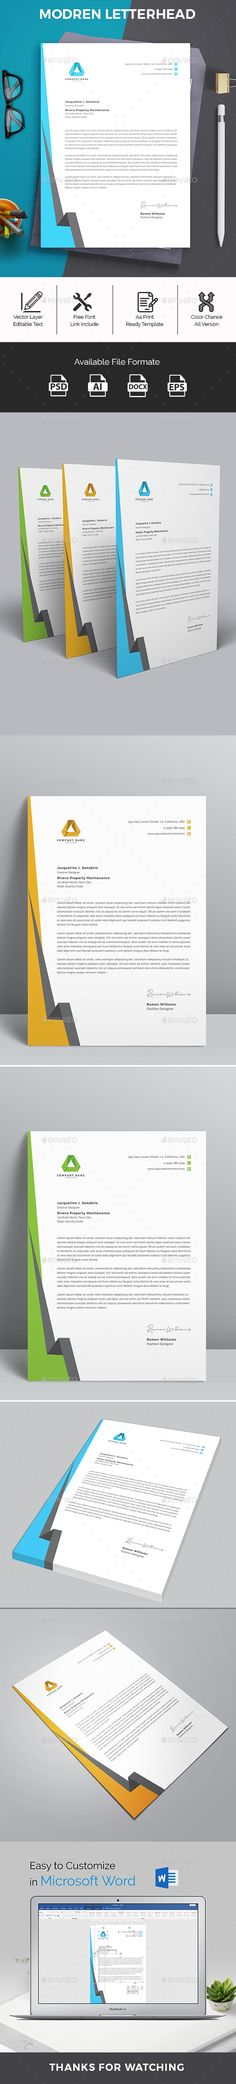 Buy Letterhead Word by telaarte on GraphicRiver. Letterhead Word Template with super modern and Corporate look. Corporate Letterhead page designs are very easy to use. Free Letterhead Templates, Letterhead Design, Company Letterhead Template, Design Templates, A4 Paper, Paper Size, Change Image, Page Design, Photoshop